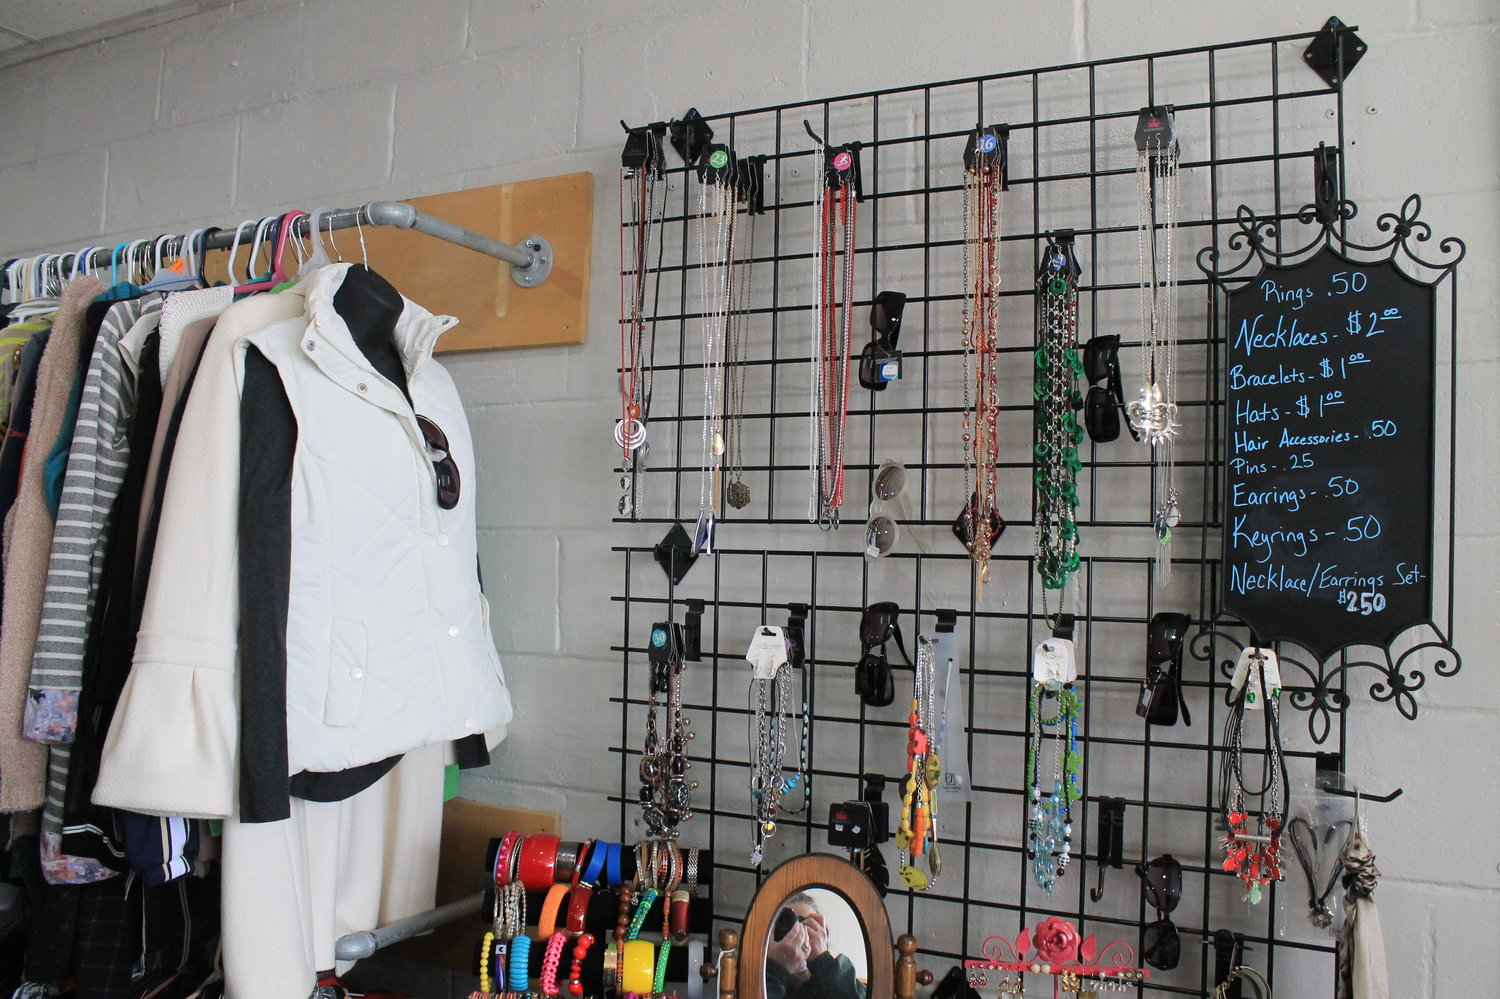 Proceeds from the City of Lights thrift store support the Dream Center, which operates an inpatient substance abuse recovery program for women out of the former home of T.S. Boyd school in Dora.